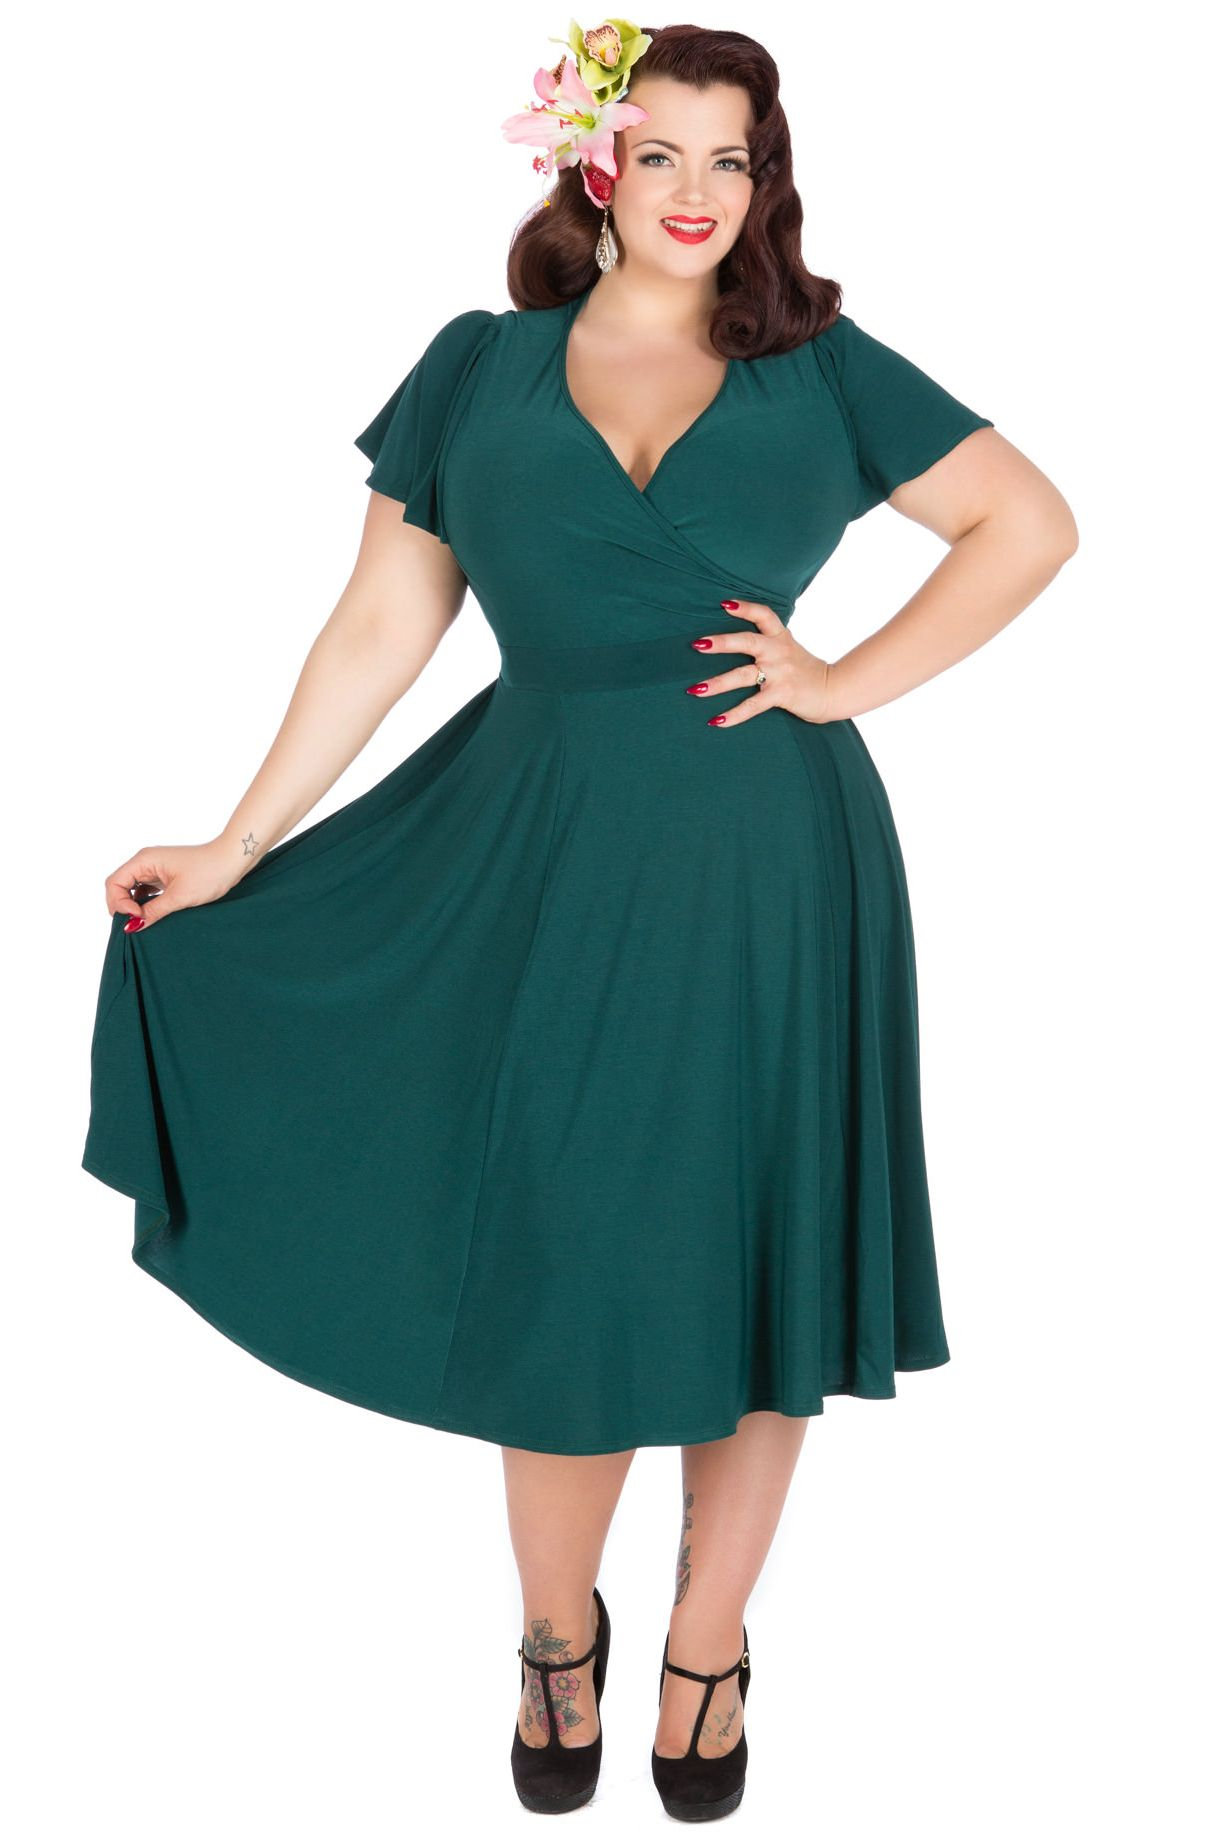 Vintage style clothes london  Lady V London : Vintage Style Dresses and Petticoats | shopping ...